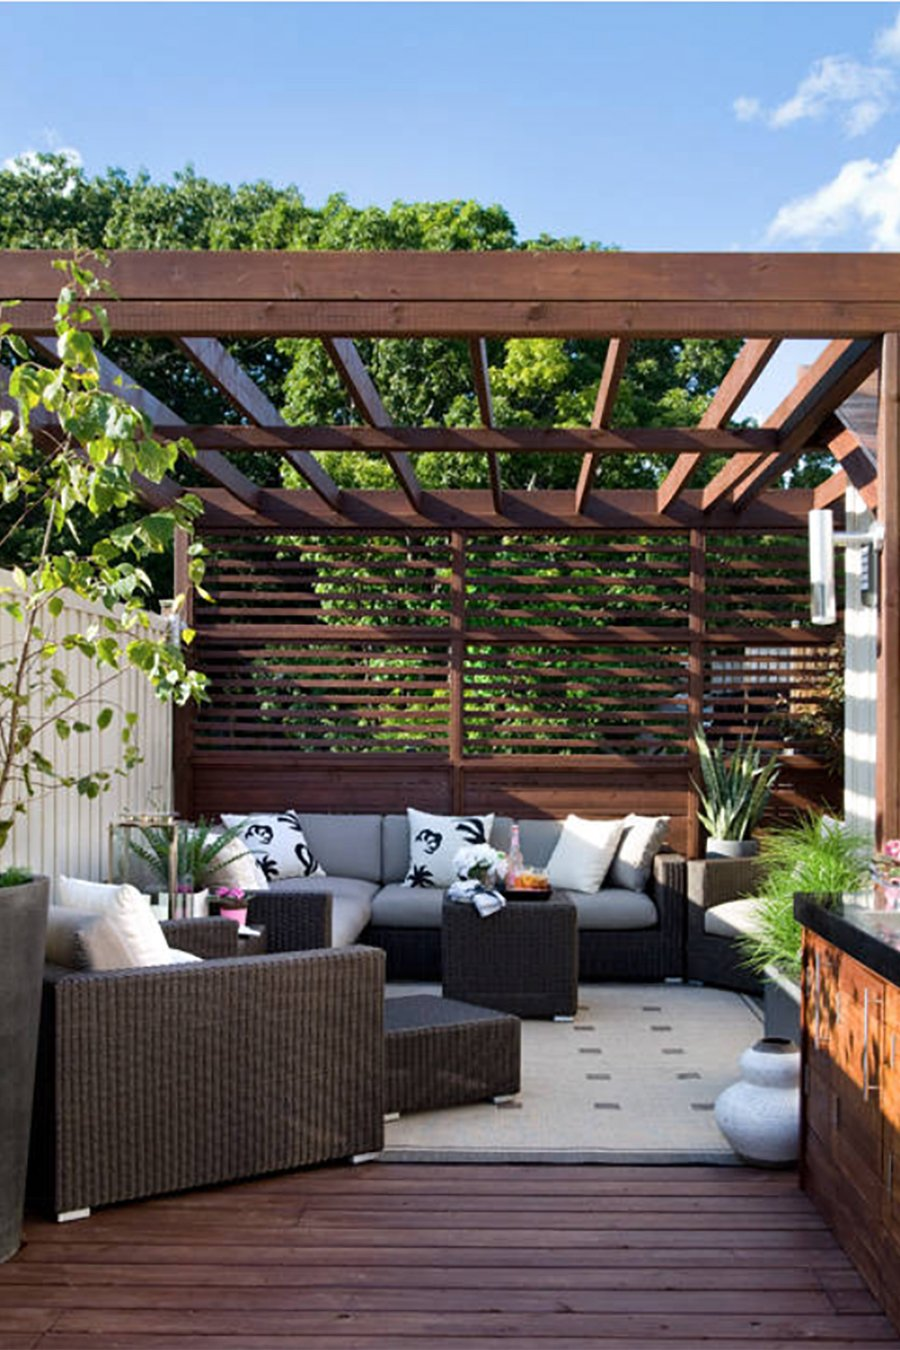 An Intimate Setting for Conversation - Outdoor Living: Dreamy Pergola Ideas For Our Deck